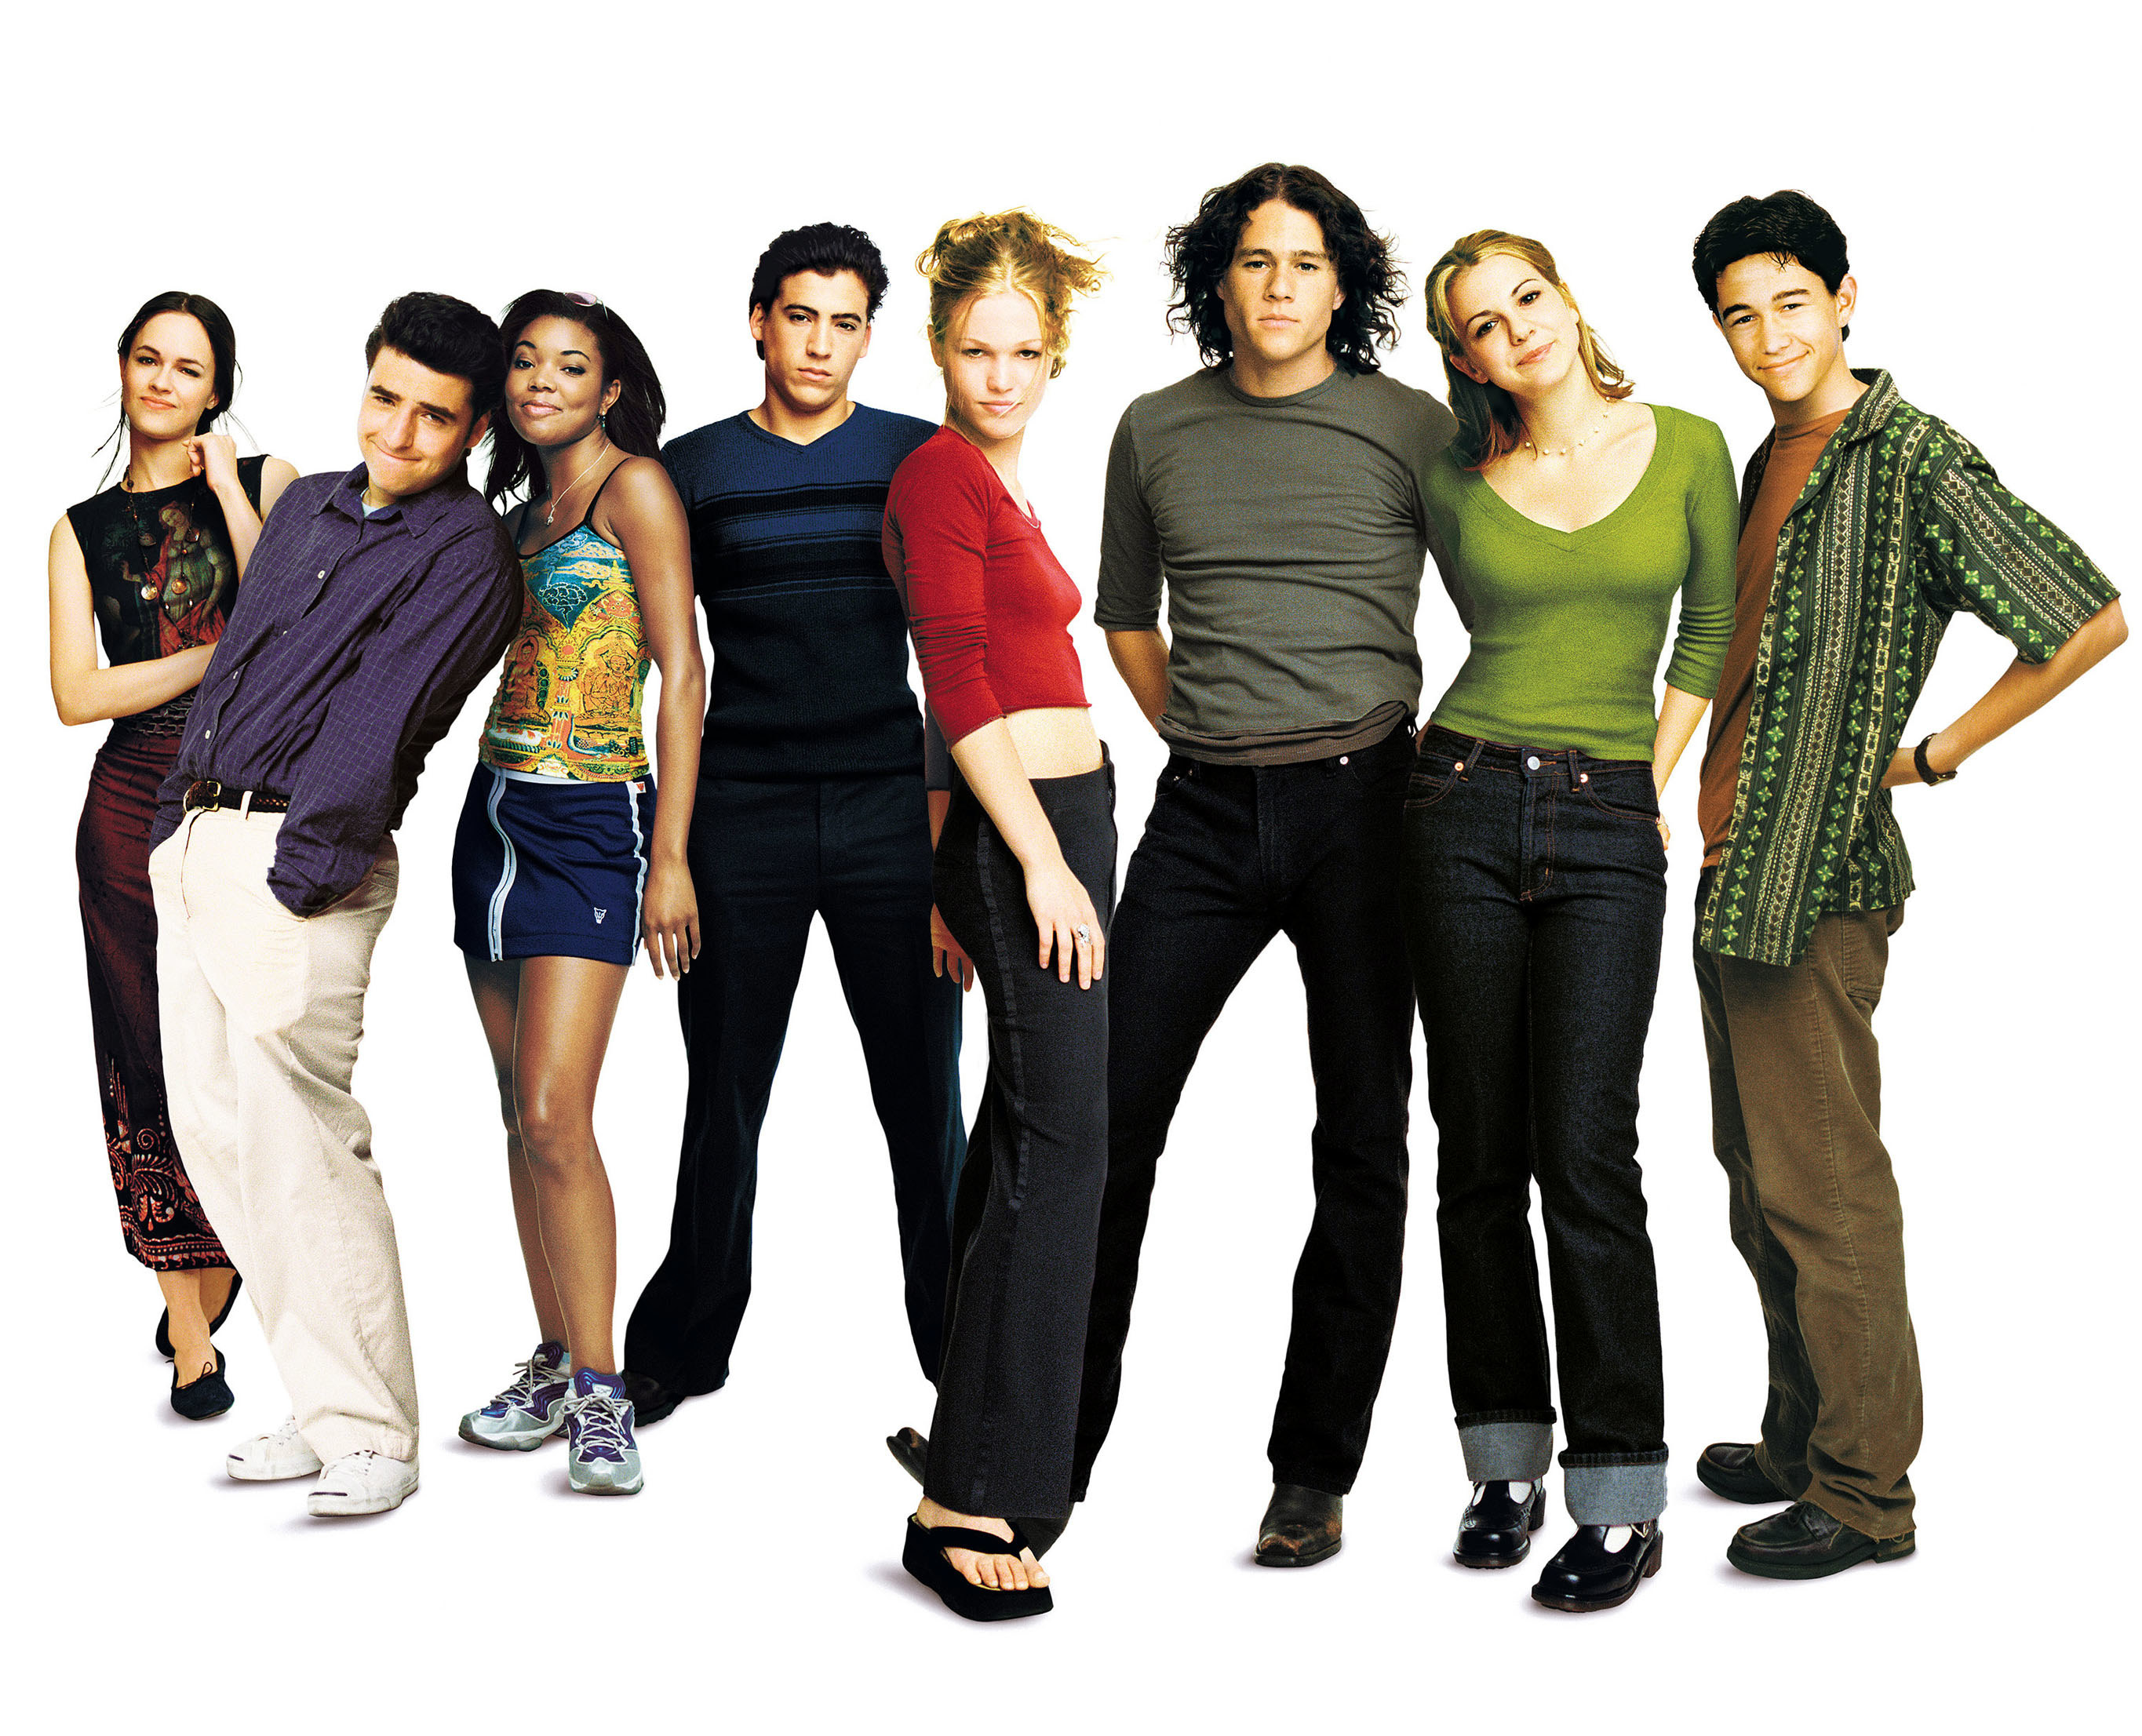 Photo of the cast of 10 Things I Hate About You agains a white background